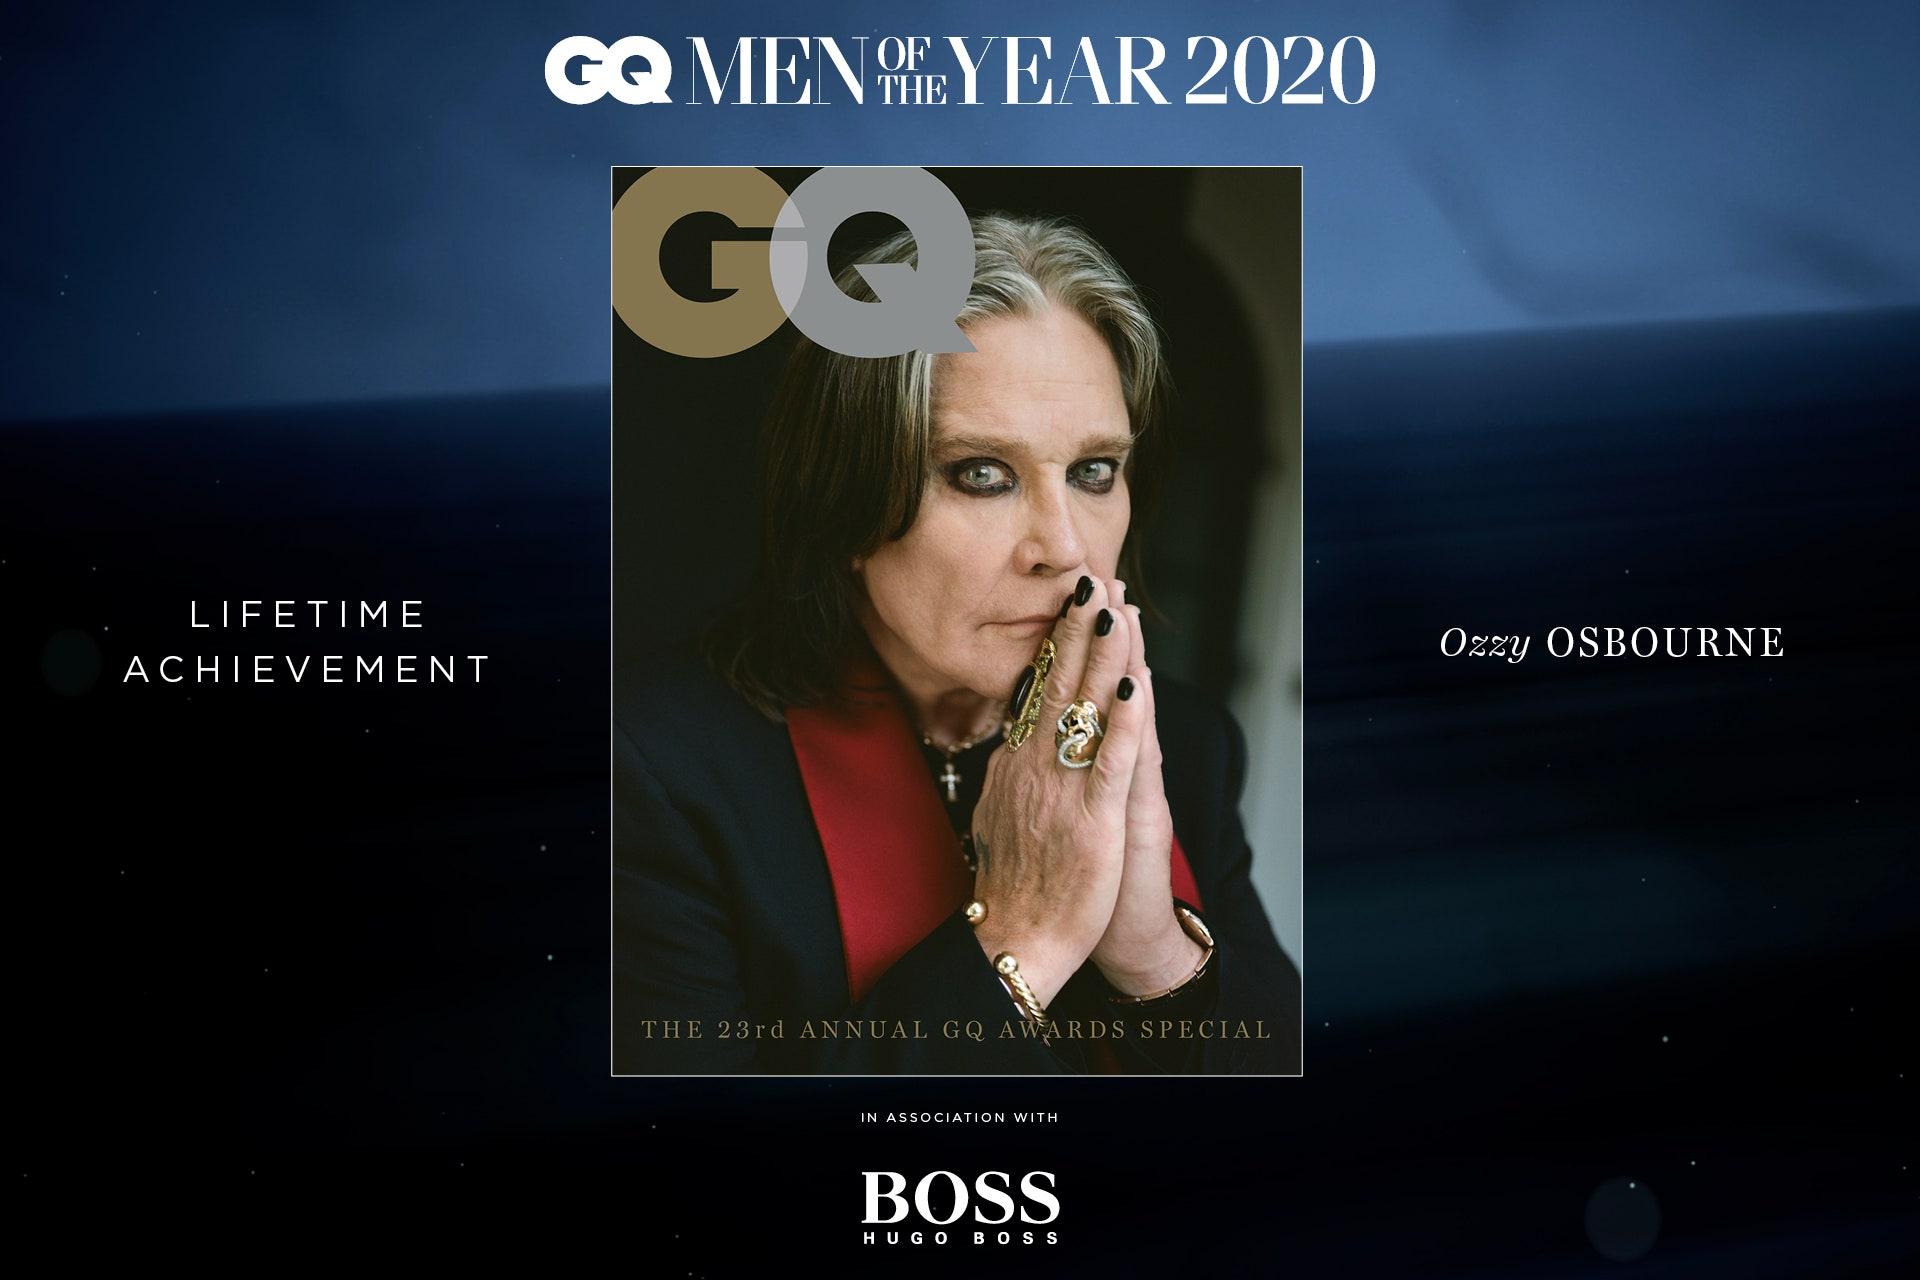 Ozzy Osbourne Lifetime Achievement GQ Men of the Year 2020